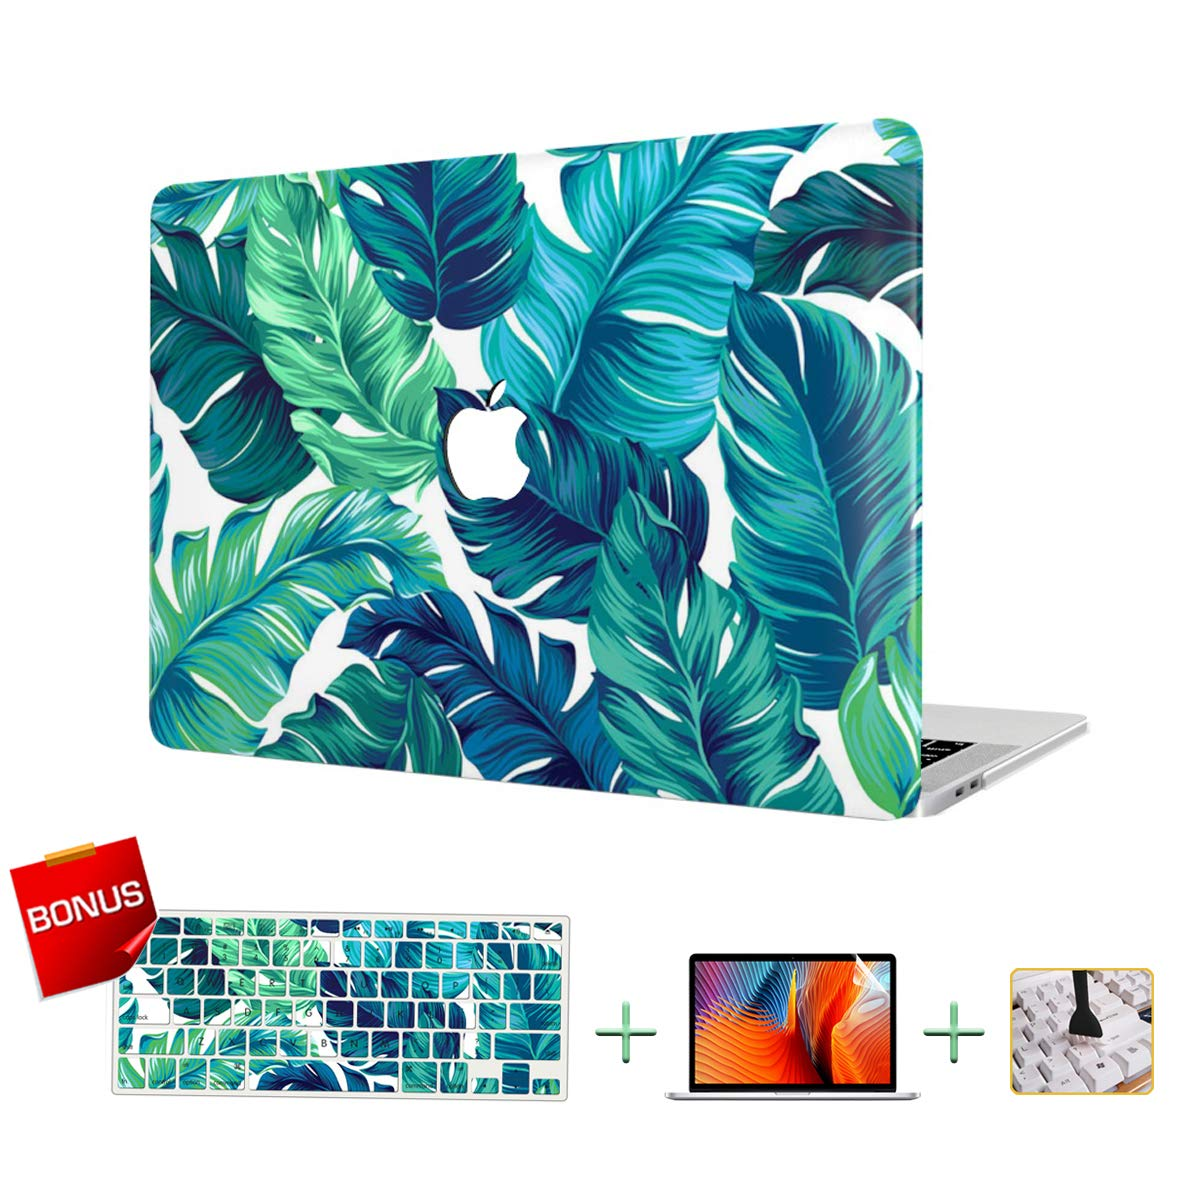 Laptop Case MacBook Case Hard Shell Case for MacBook Air 13-inch Model A1932(2018 Release) with Keyboard Skin Cover and Screen Protector